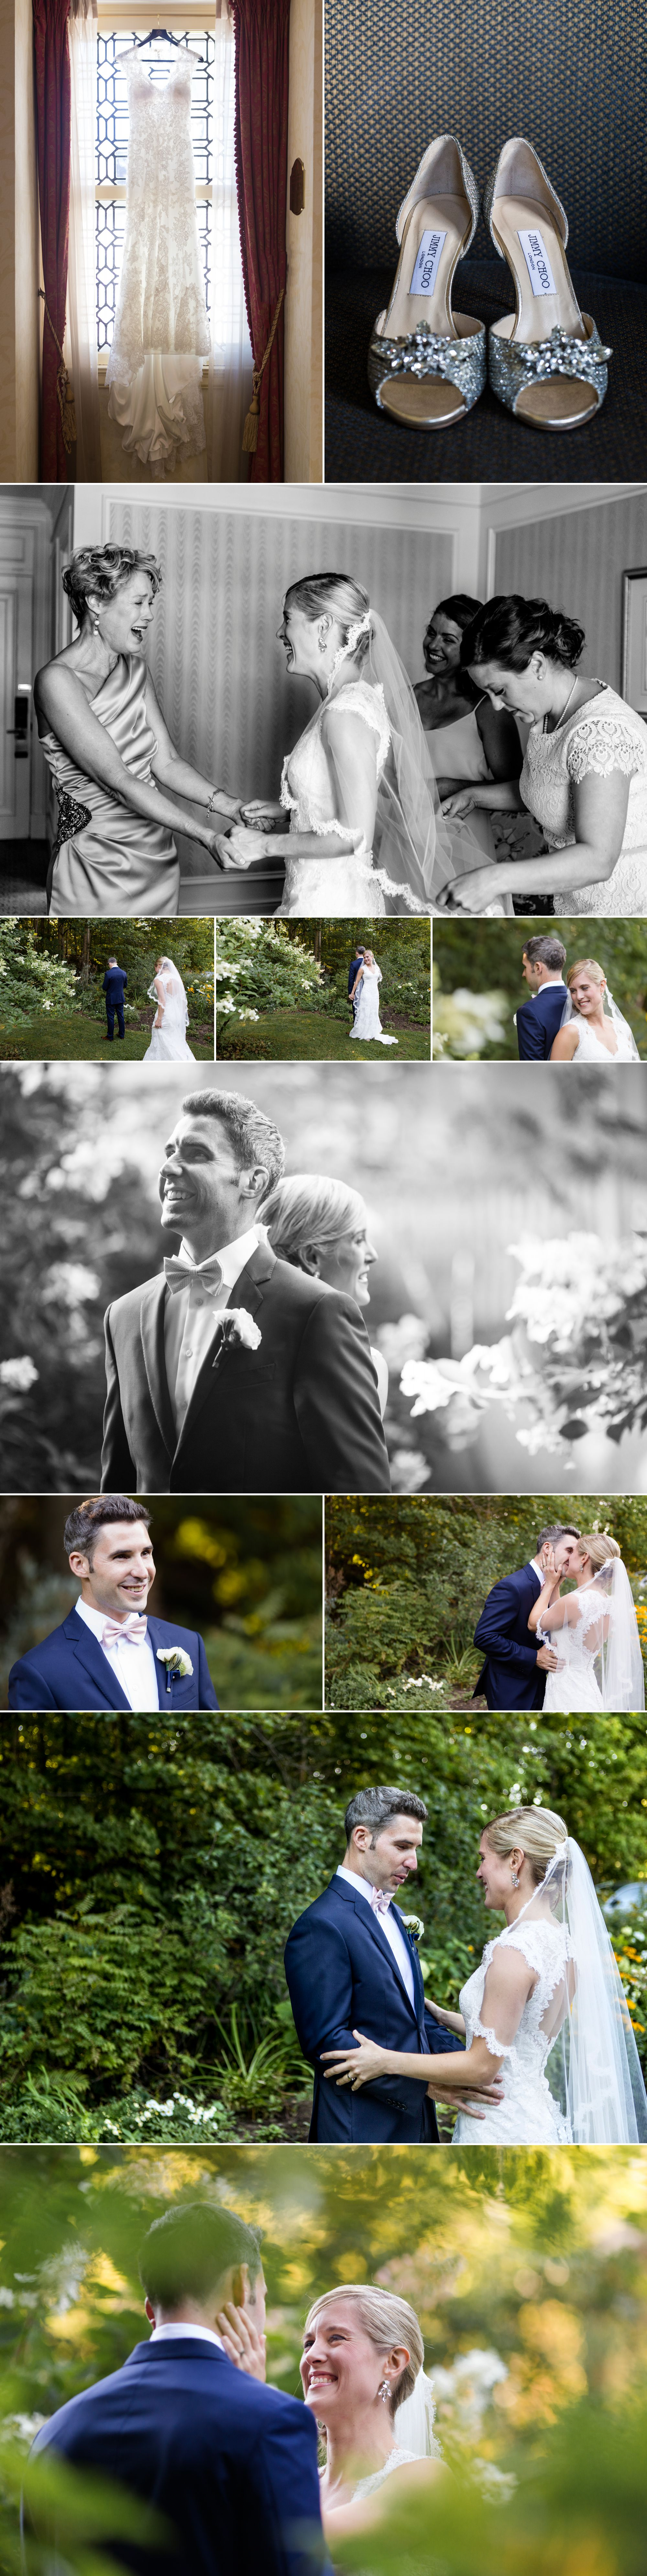 Photographs of a revel at a cottage wedding